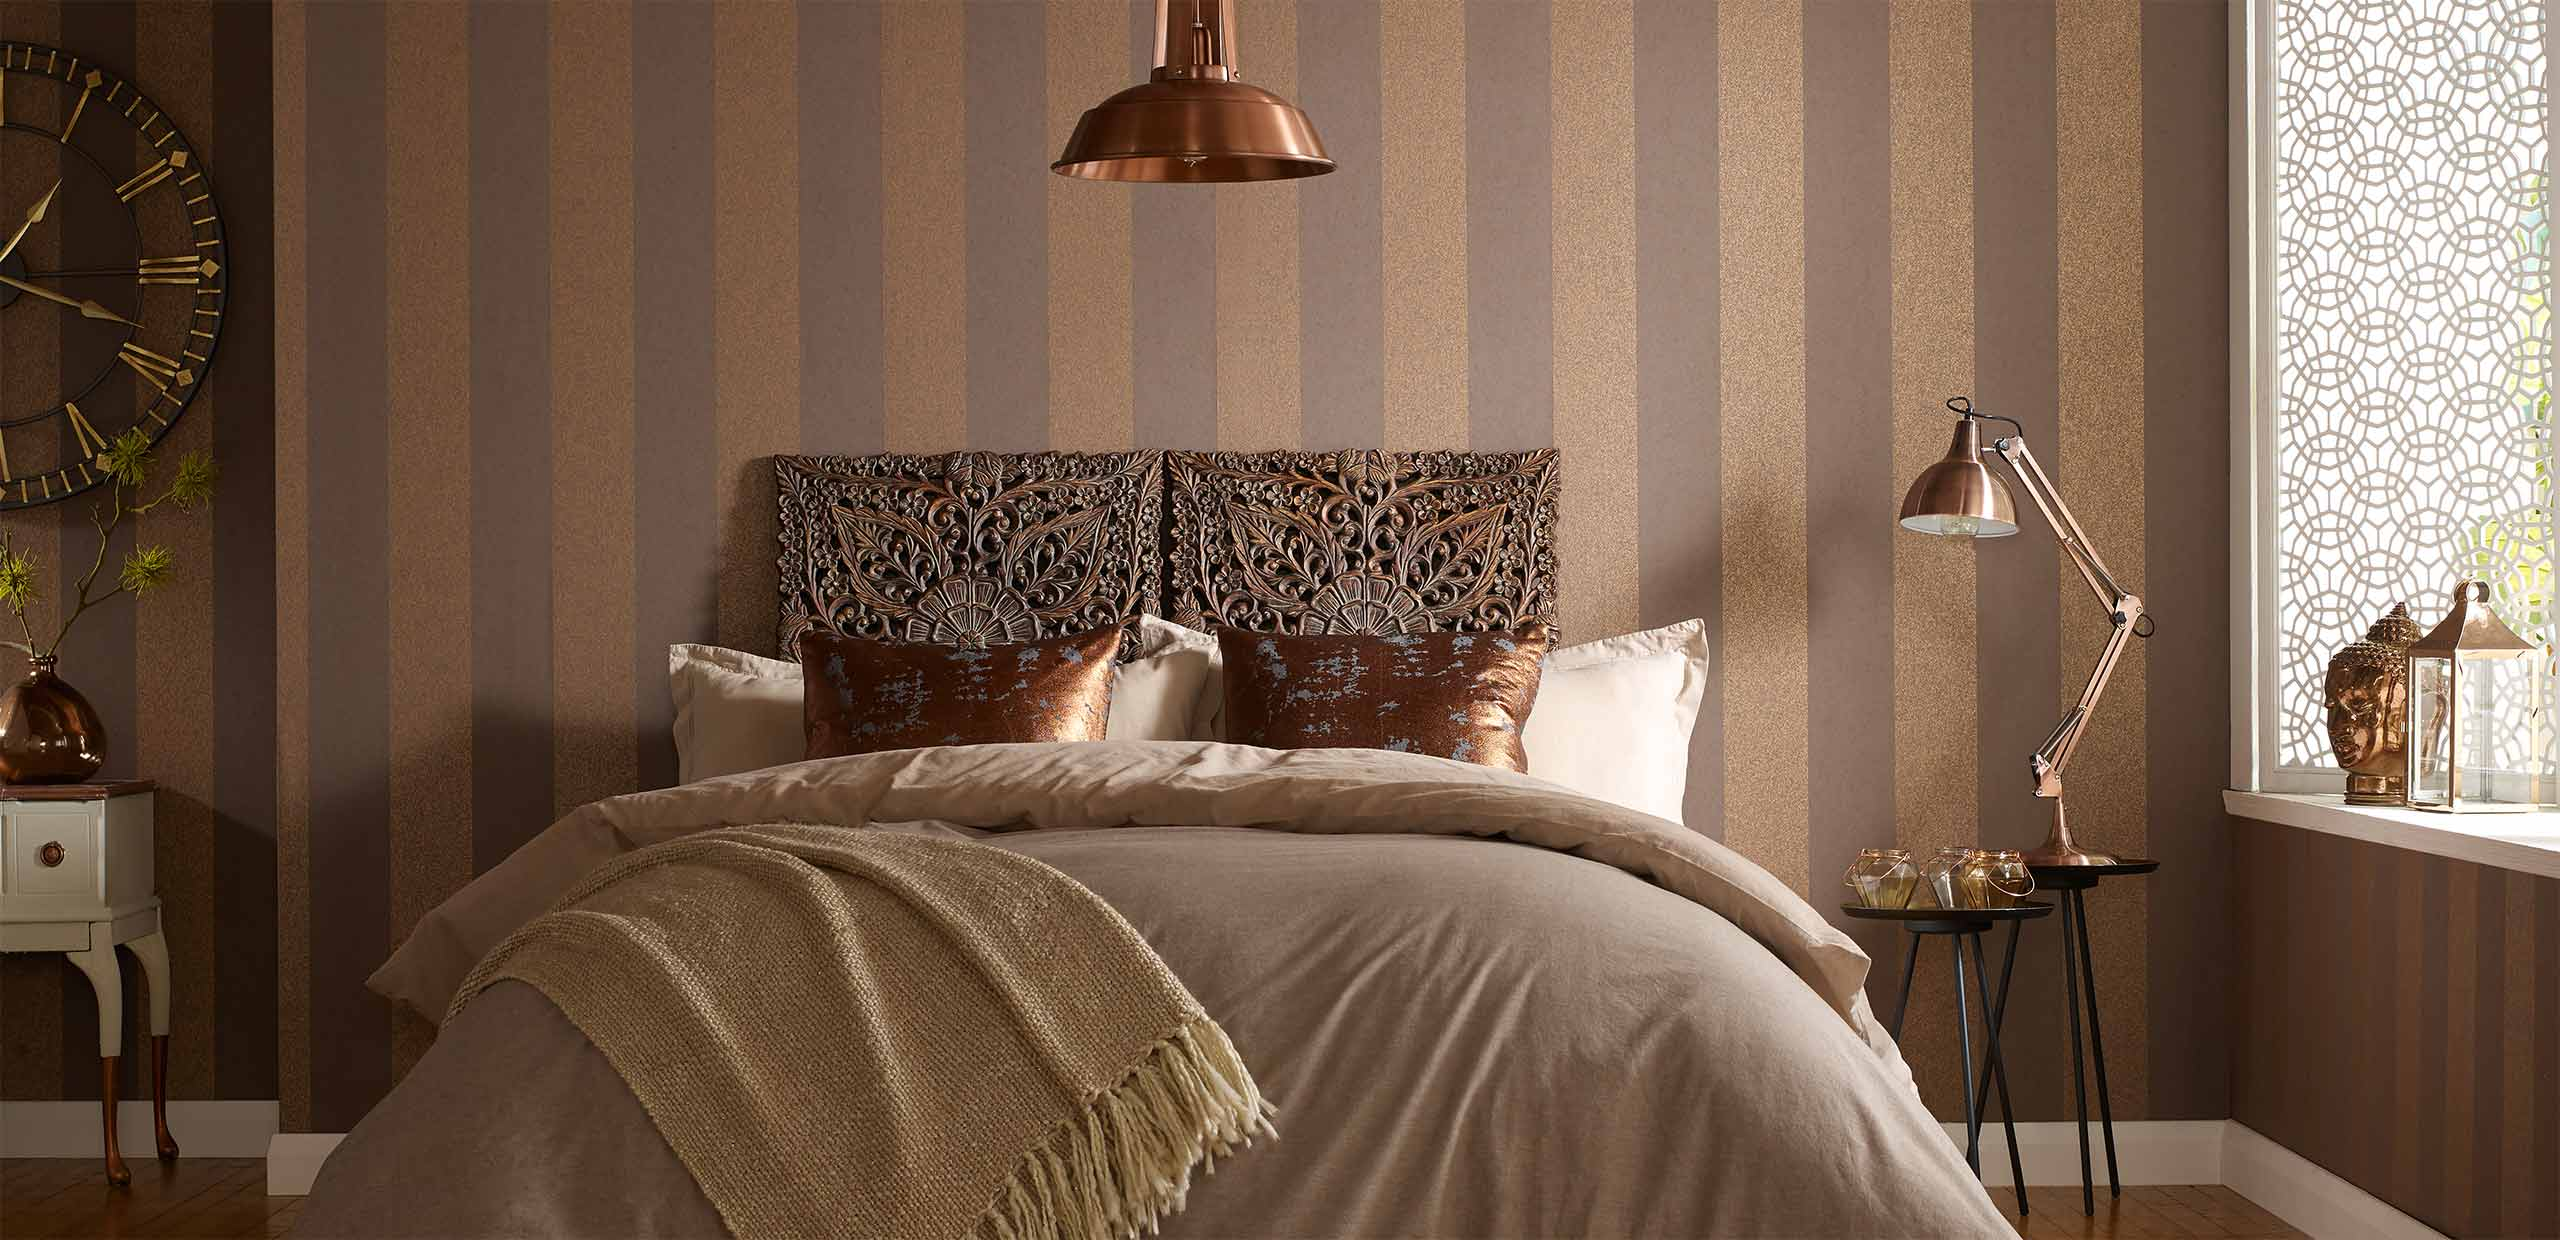 Bedroom Wallpaper | Wall Decor Ideas for Bedrooms